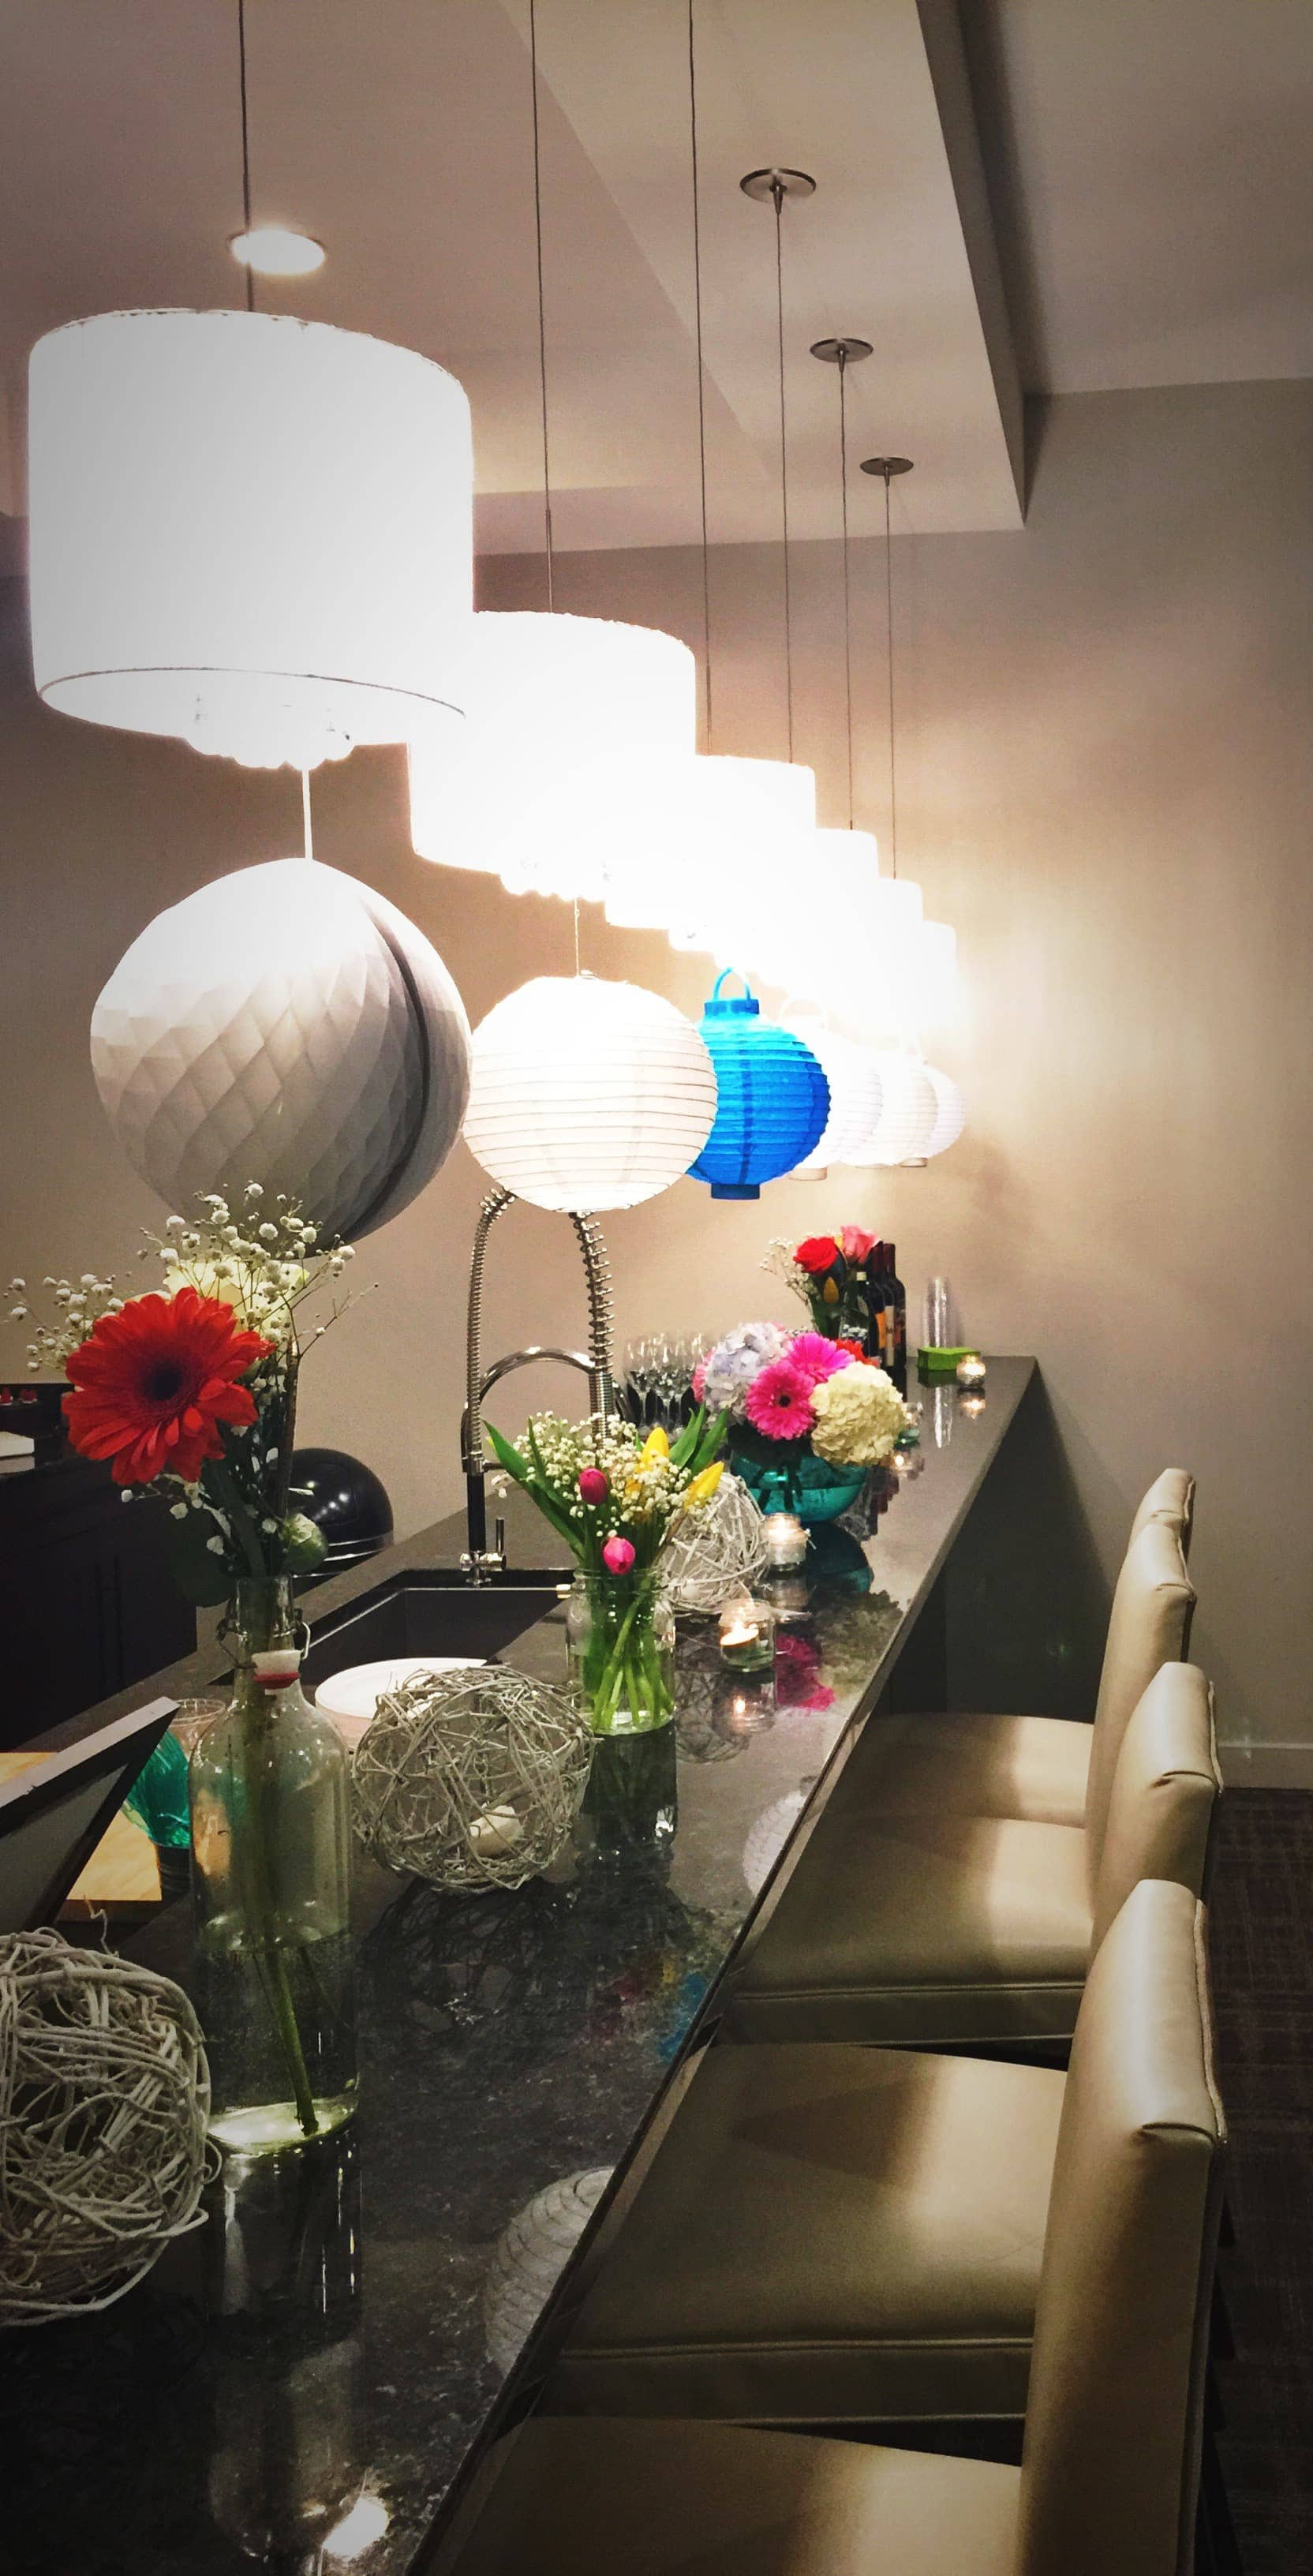 baby shower with flowers on counter and paper lanterns having from lights